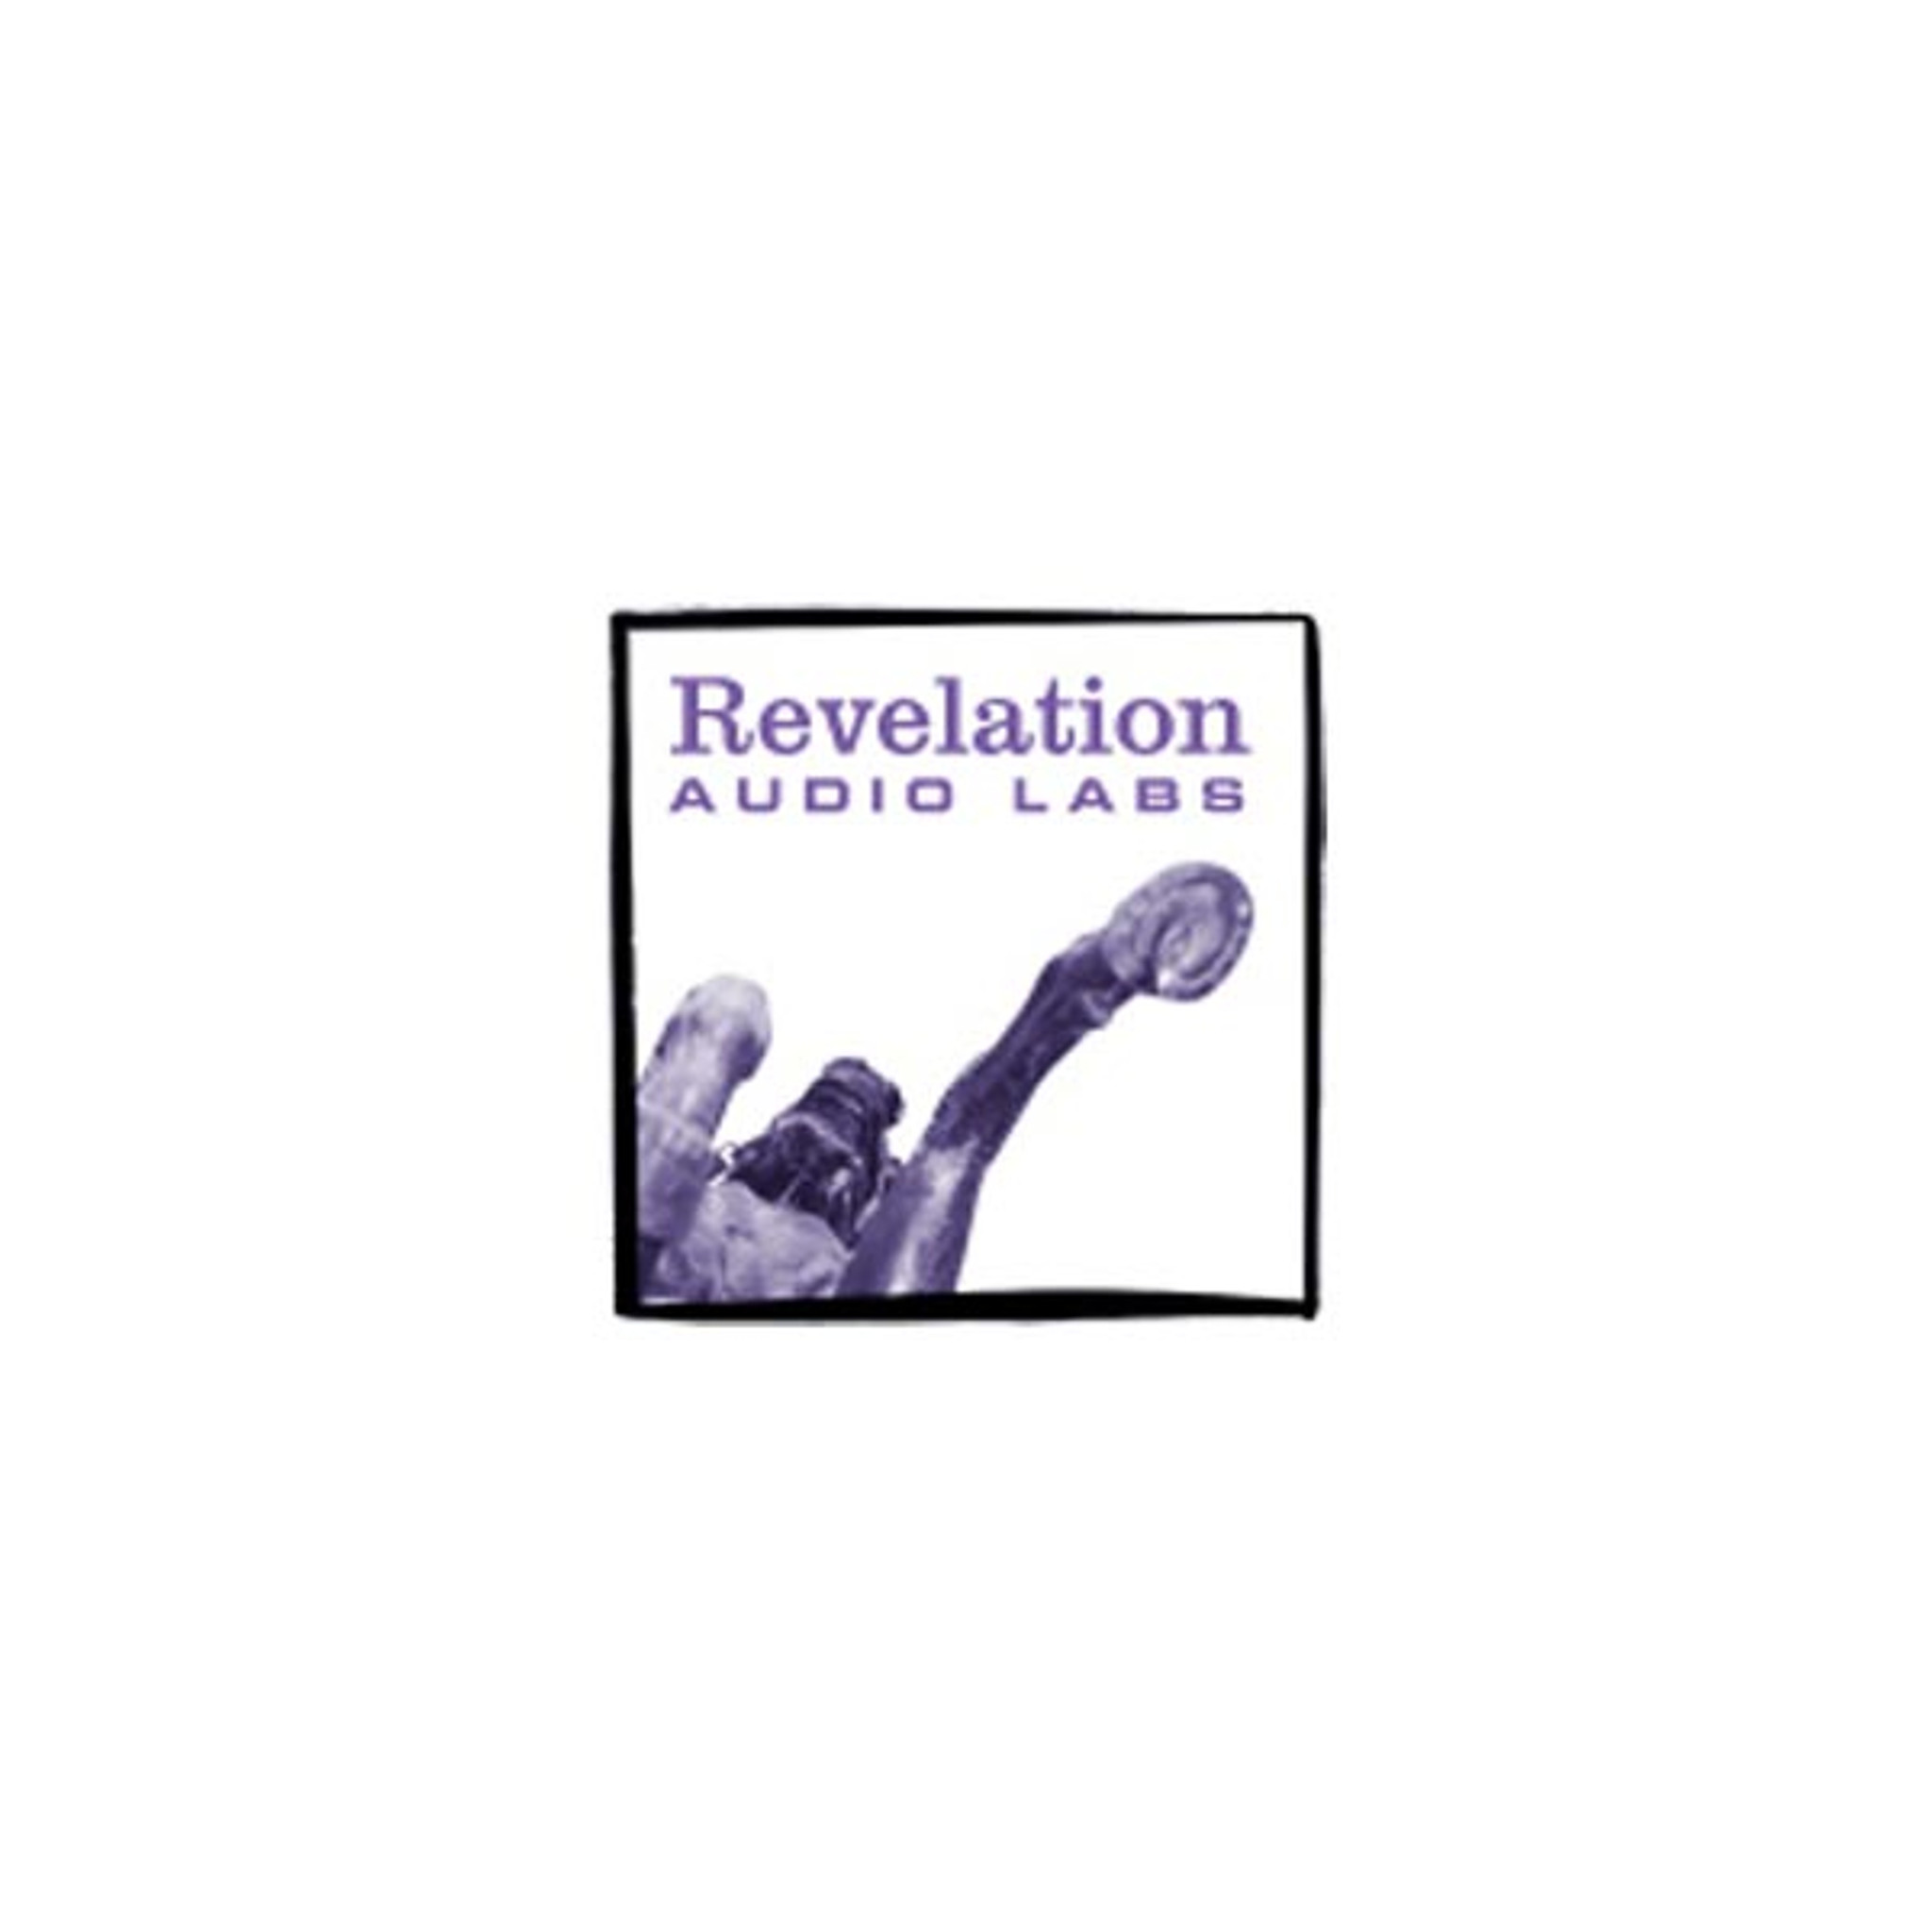 Revelation Audio Labs